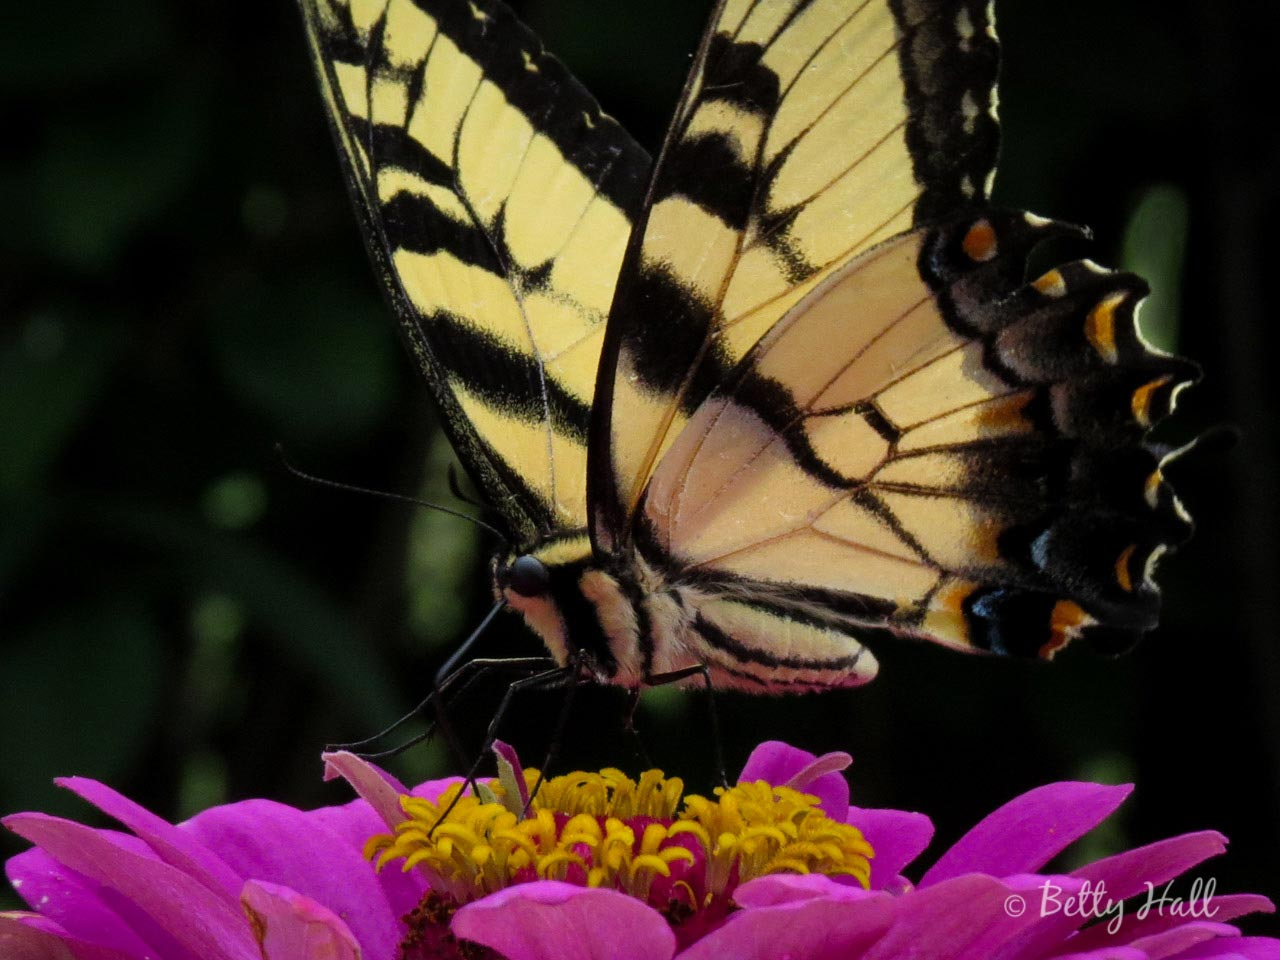 Eastern Tiger Swllowtail butterfly on Zinniatiger-swallowtail-butterfly-on-zinnia